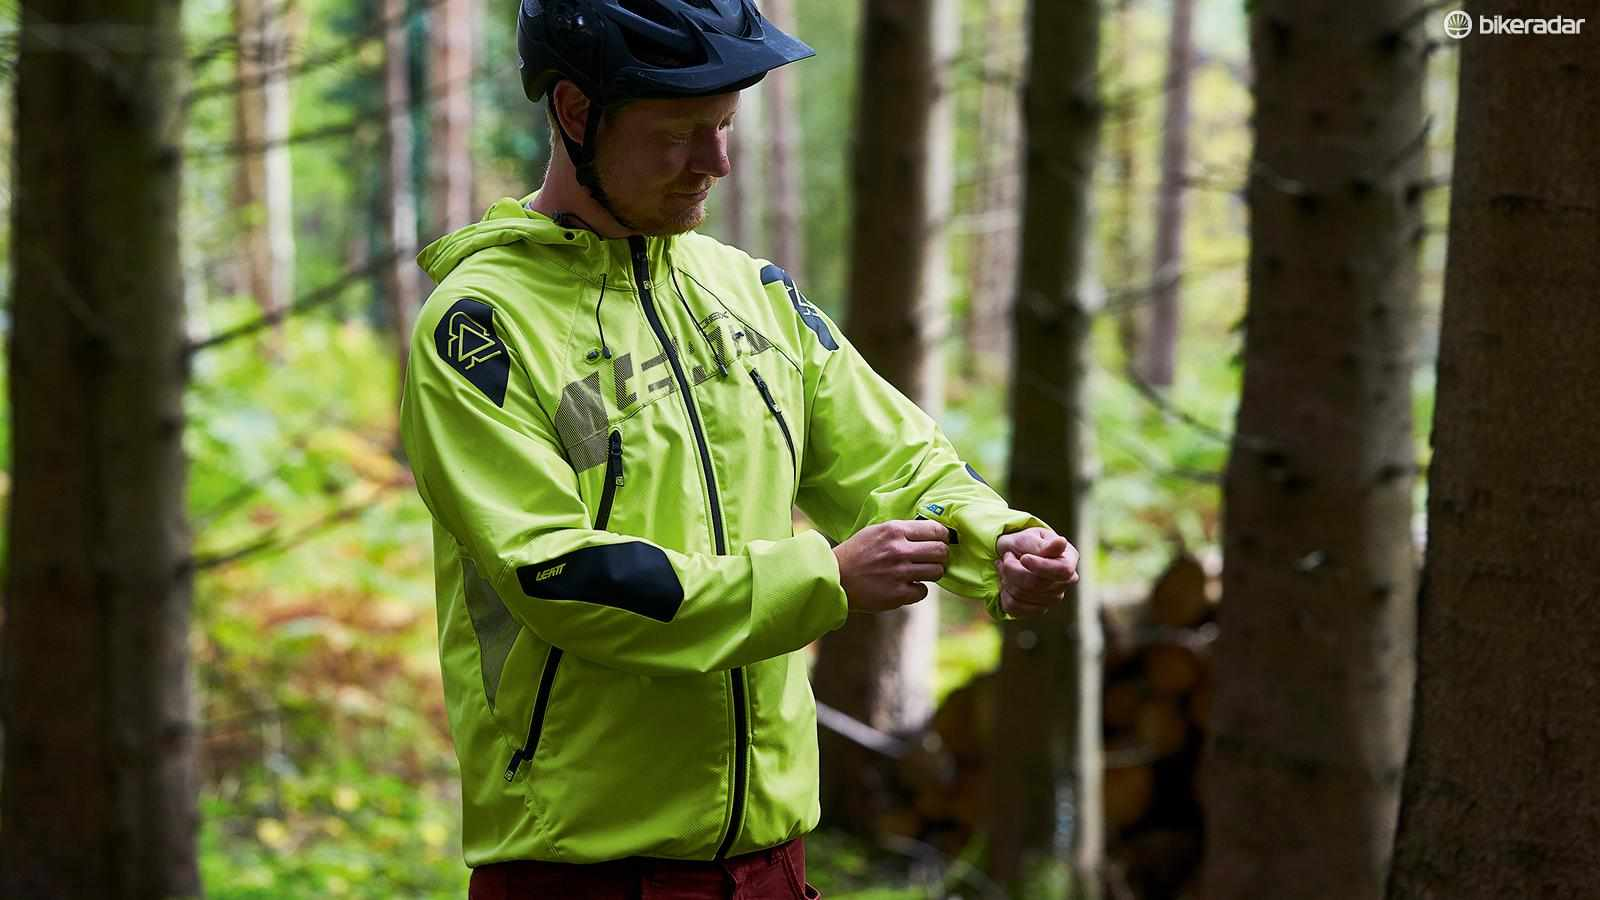 Leatt's DBX 4.0 All-Mountain waterproof jacket